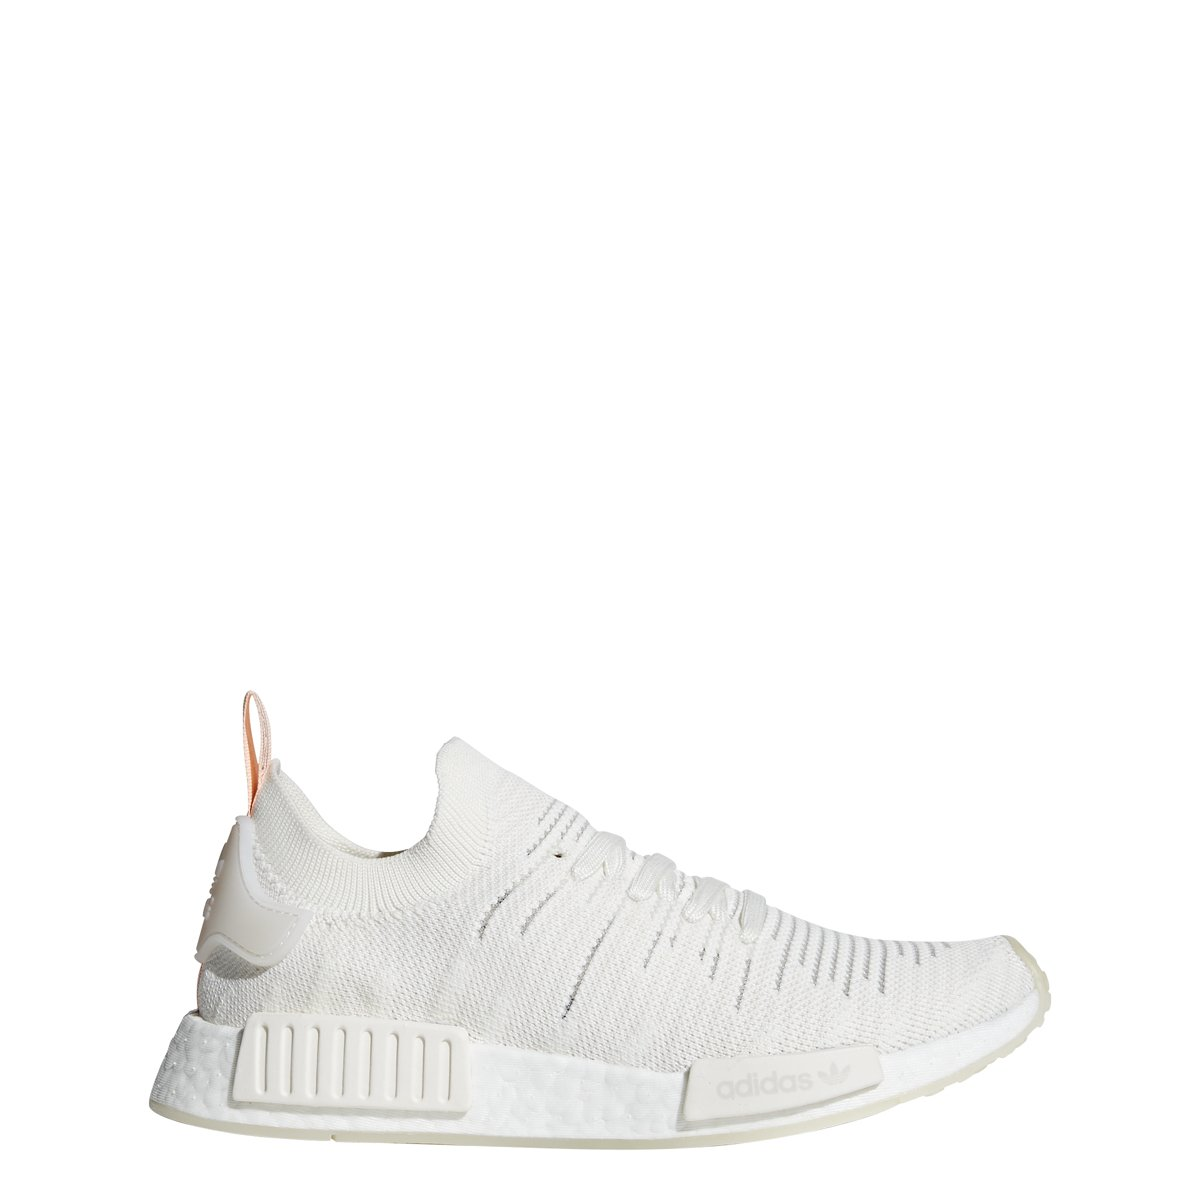 adidas Originals NMD_R1 Womens Running Trainers Sneakers B07888DW6S 6.5 B(M) US|Cloud White/Cloud White/Clear Orange